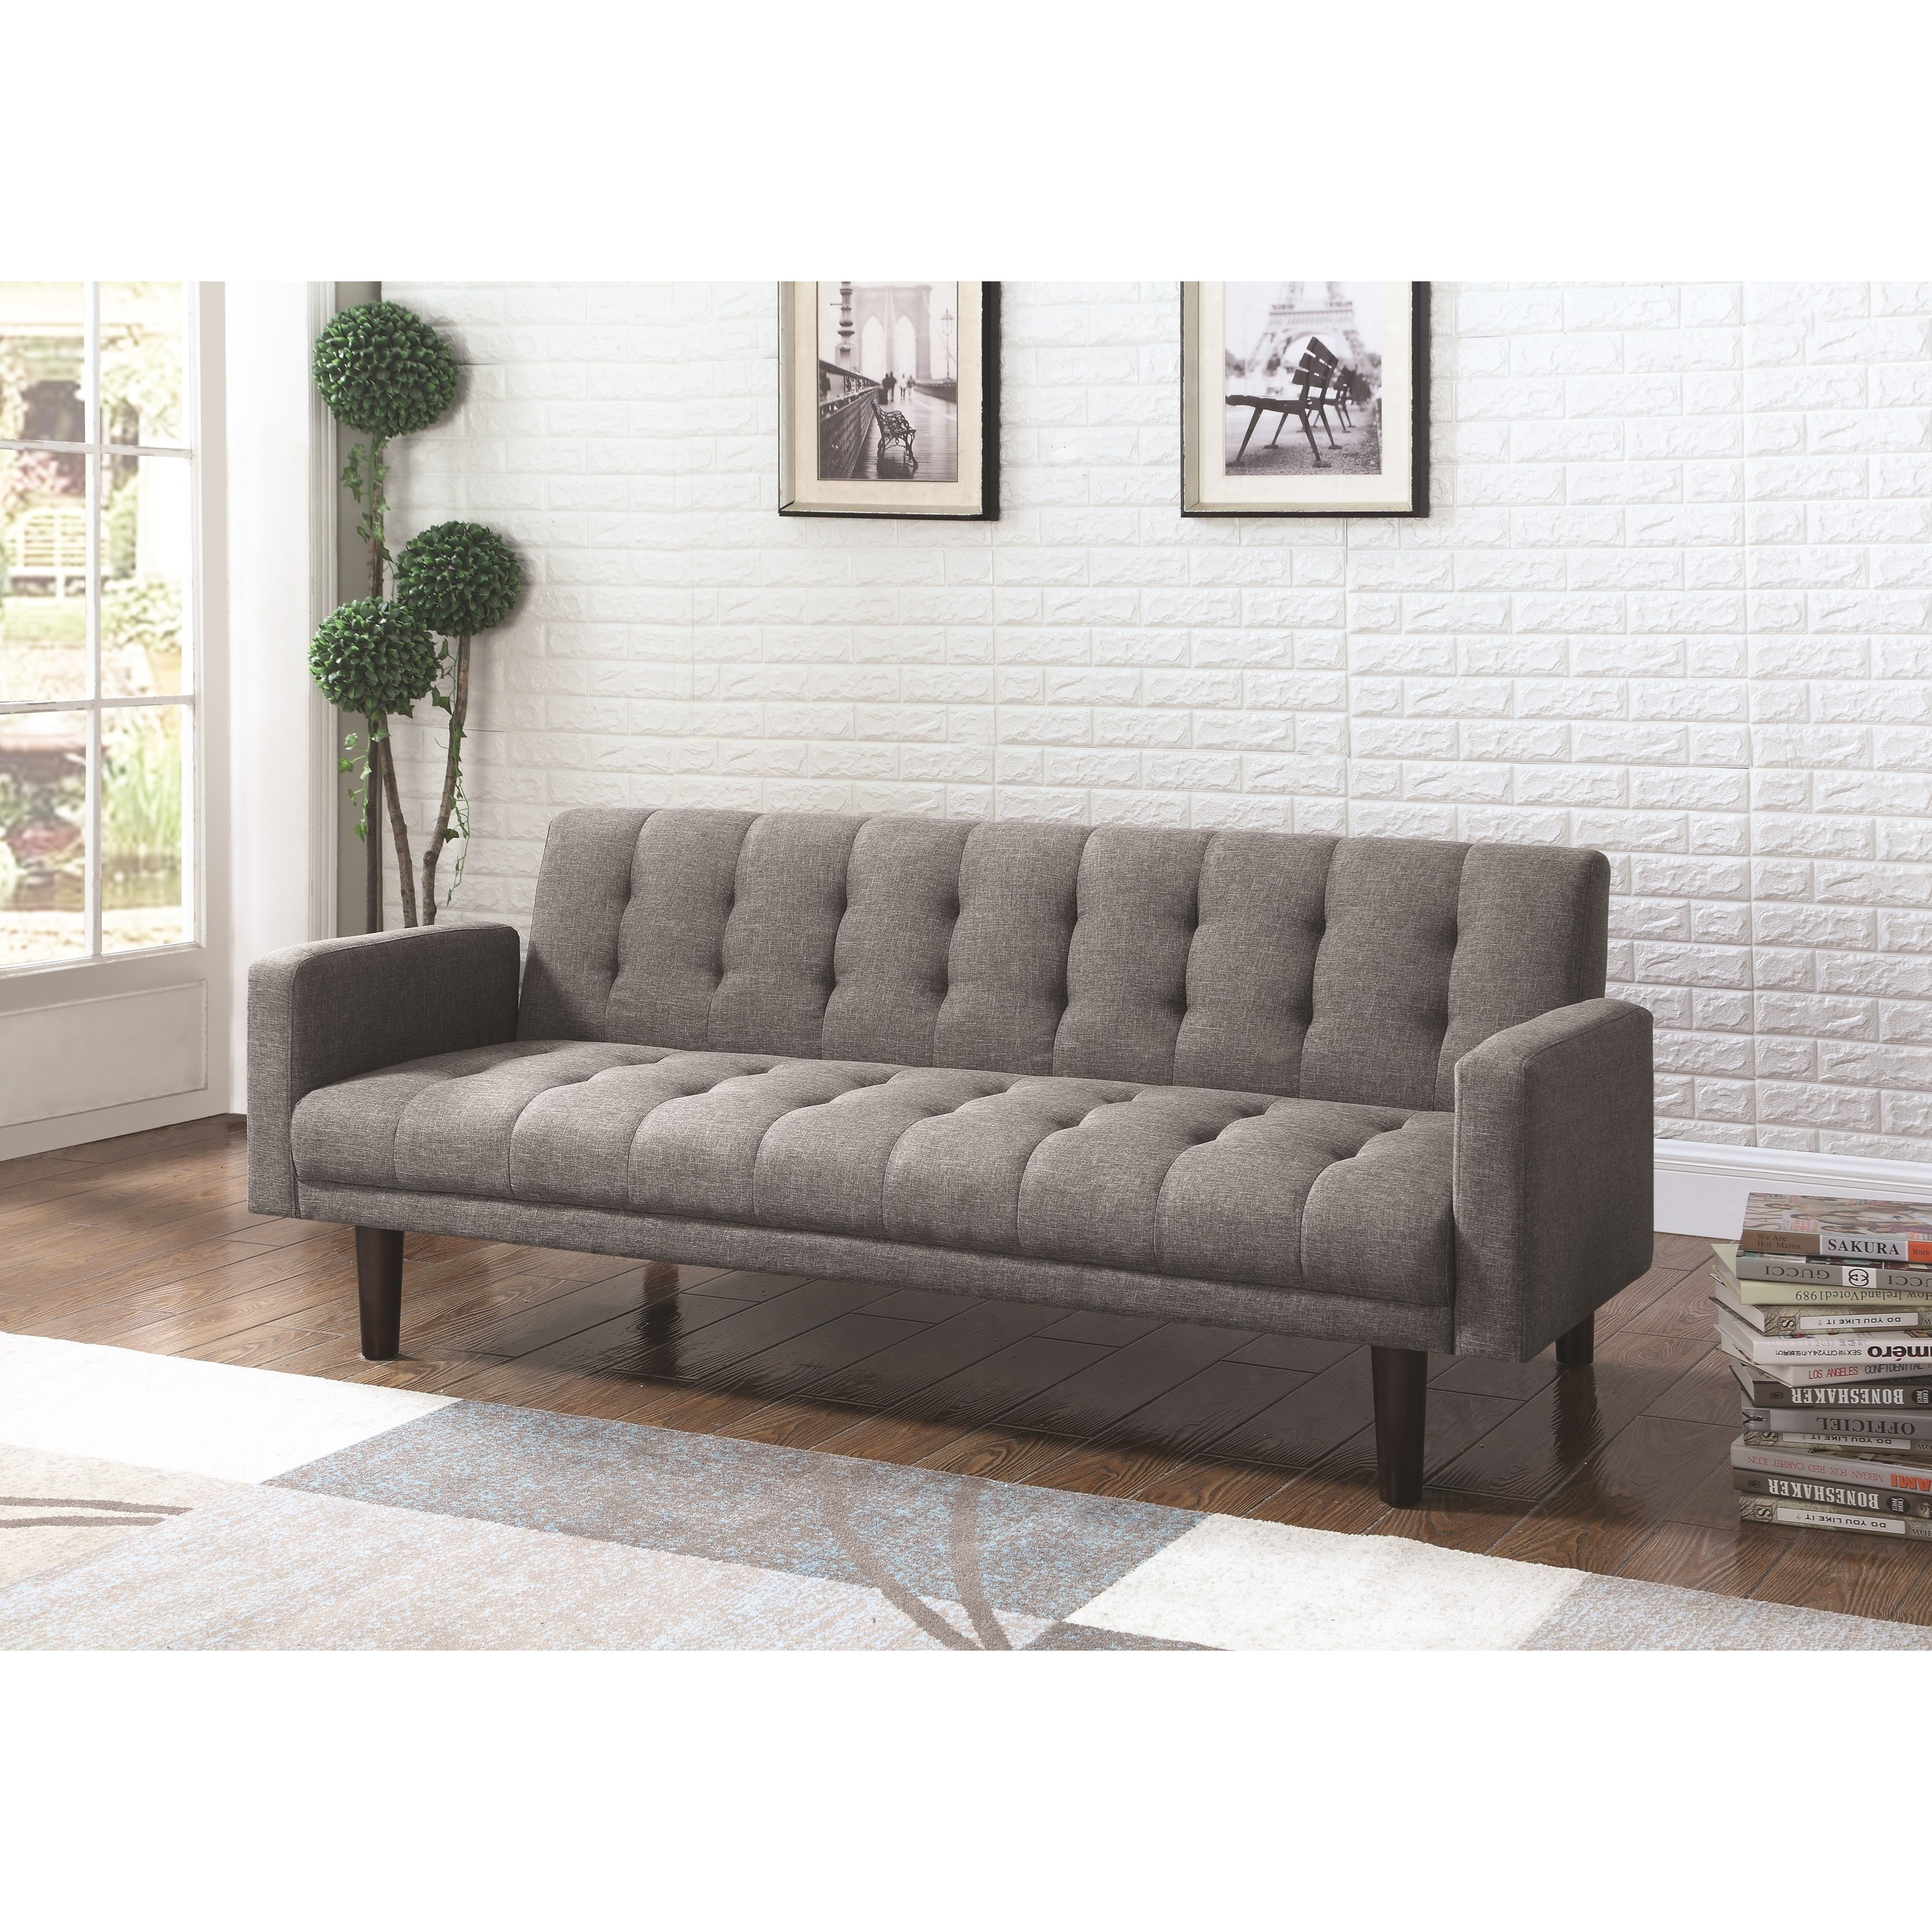 Skyler Modern Sofa Bed with Button Tufting UMF360010